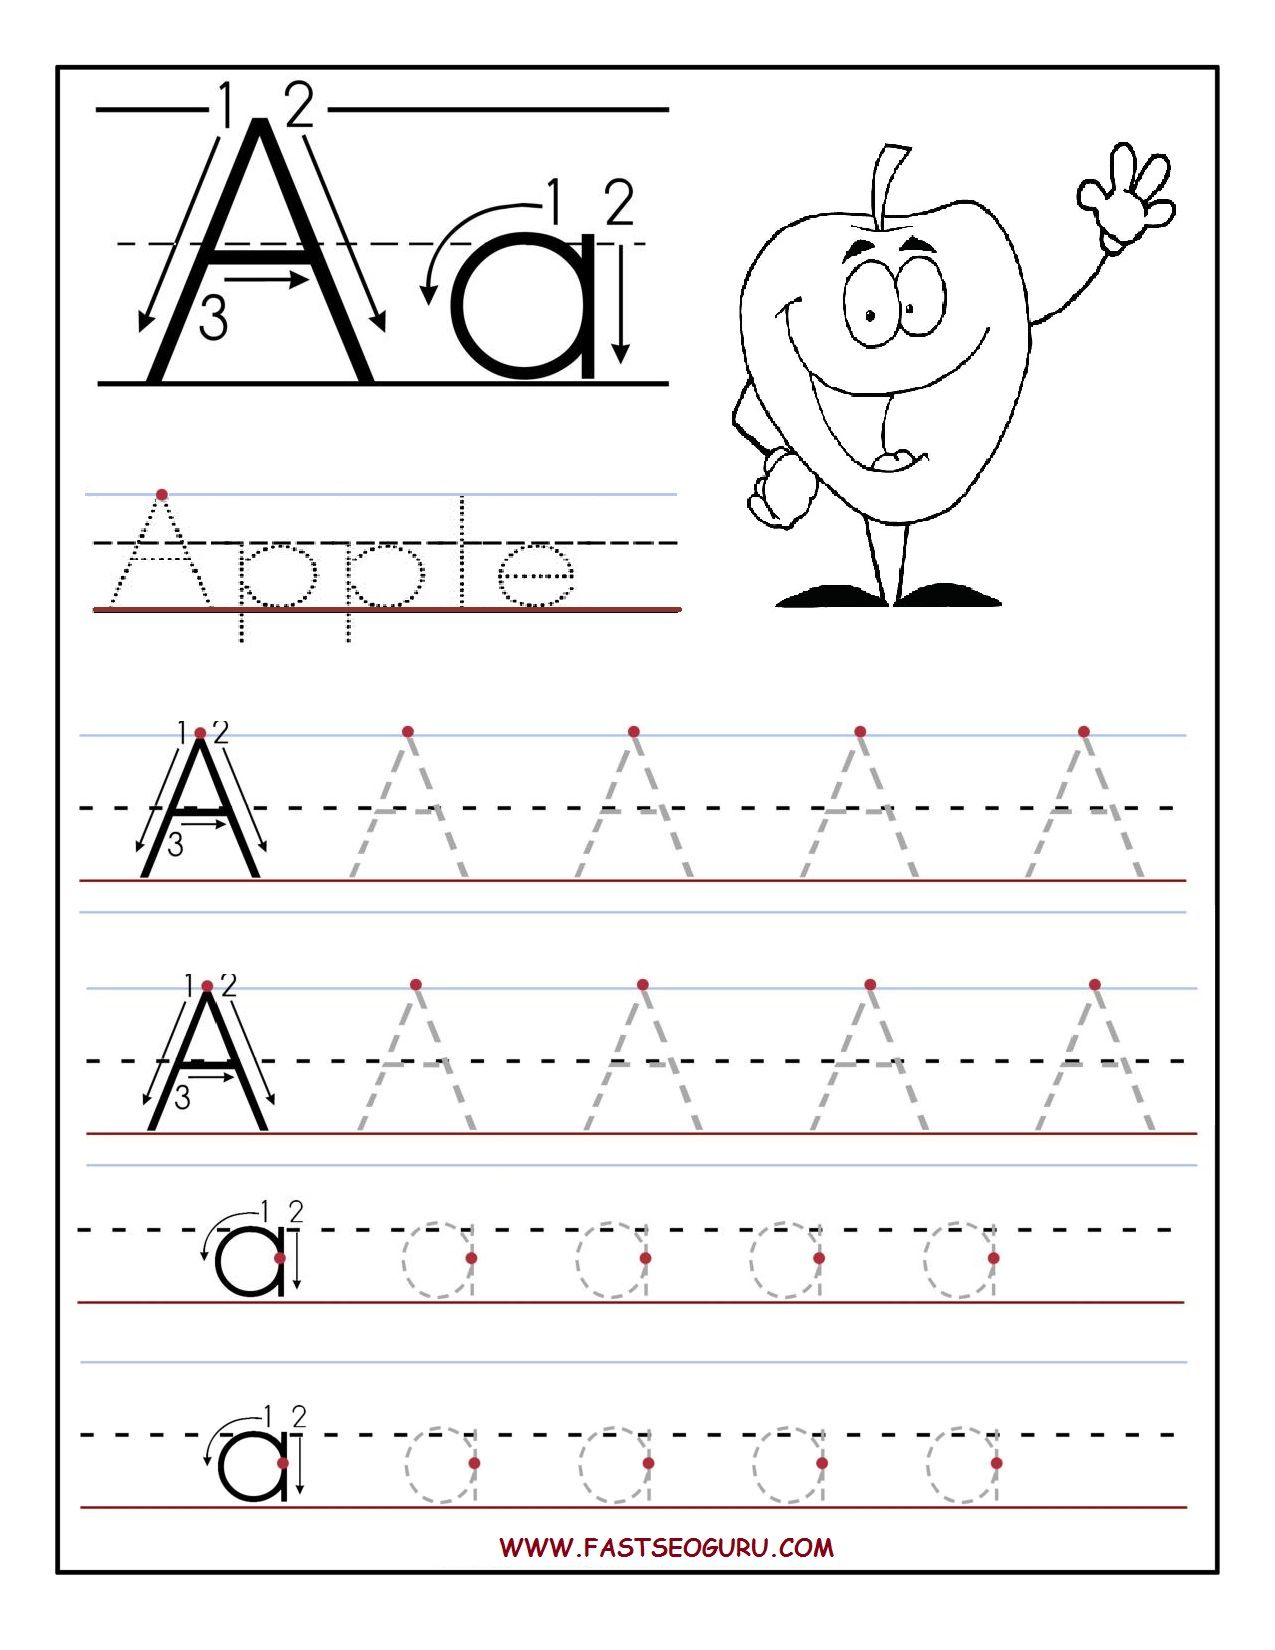 Worksheets Letter A Worksheets 1000 images about drew on pinterest letter tracing worksheets free printable and preschool alphabet